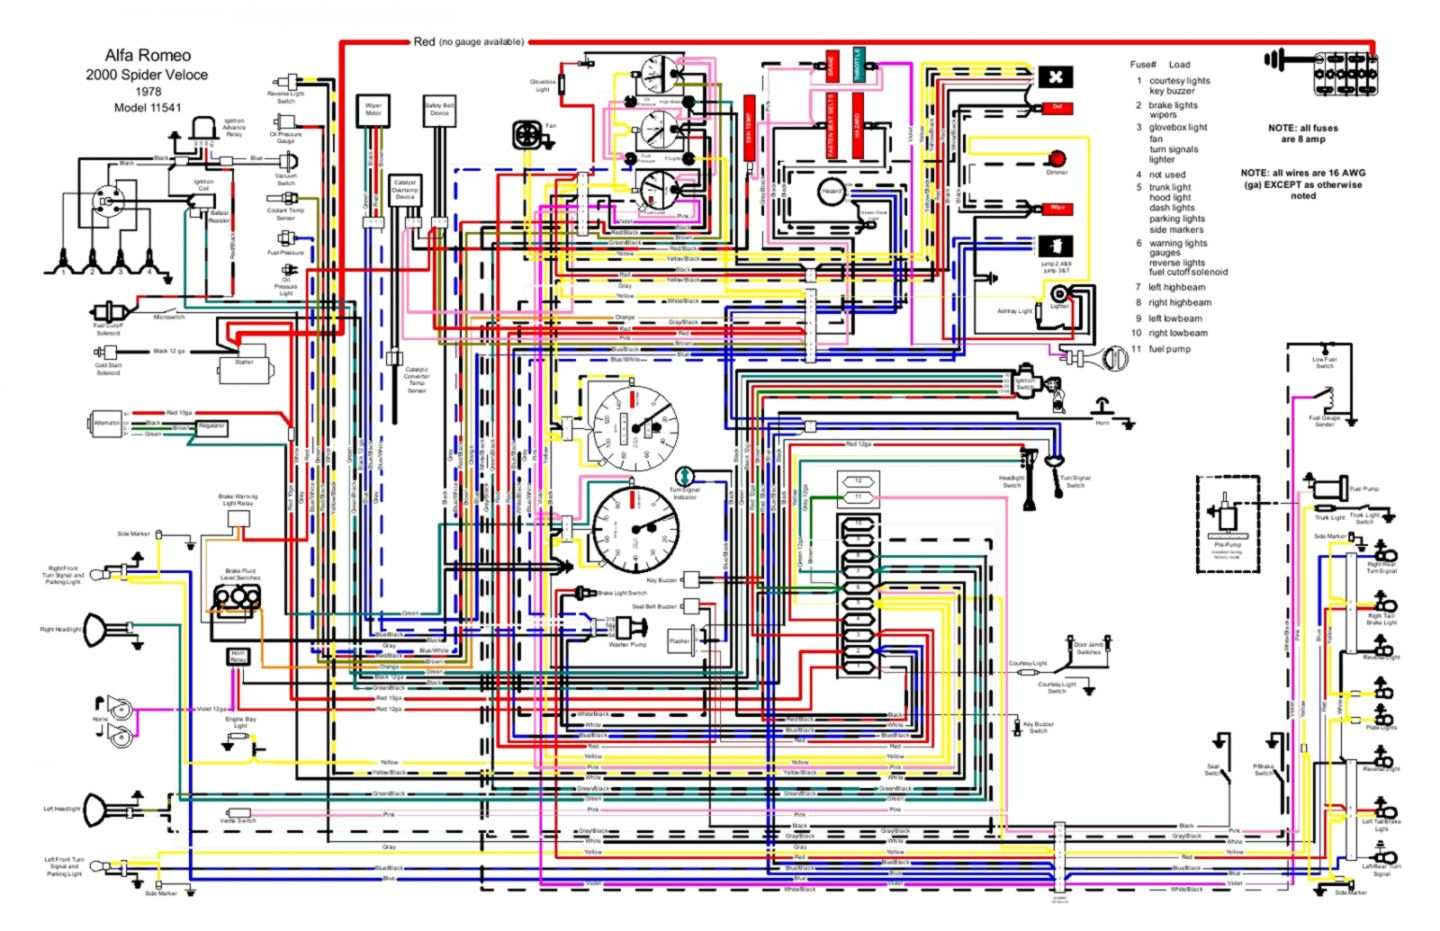 basic automotive wiring diagram wiring diagram paper vehicle wiring diagram symbols basic auto electrical diagram wiring [ 1440 x 931 Pixel ]